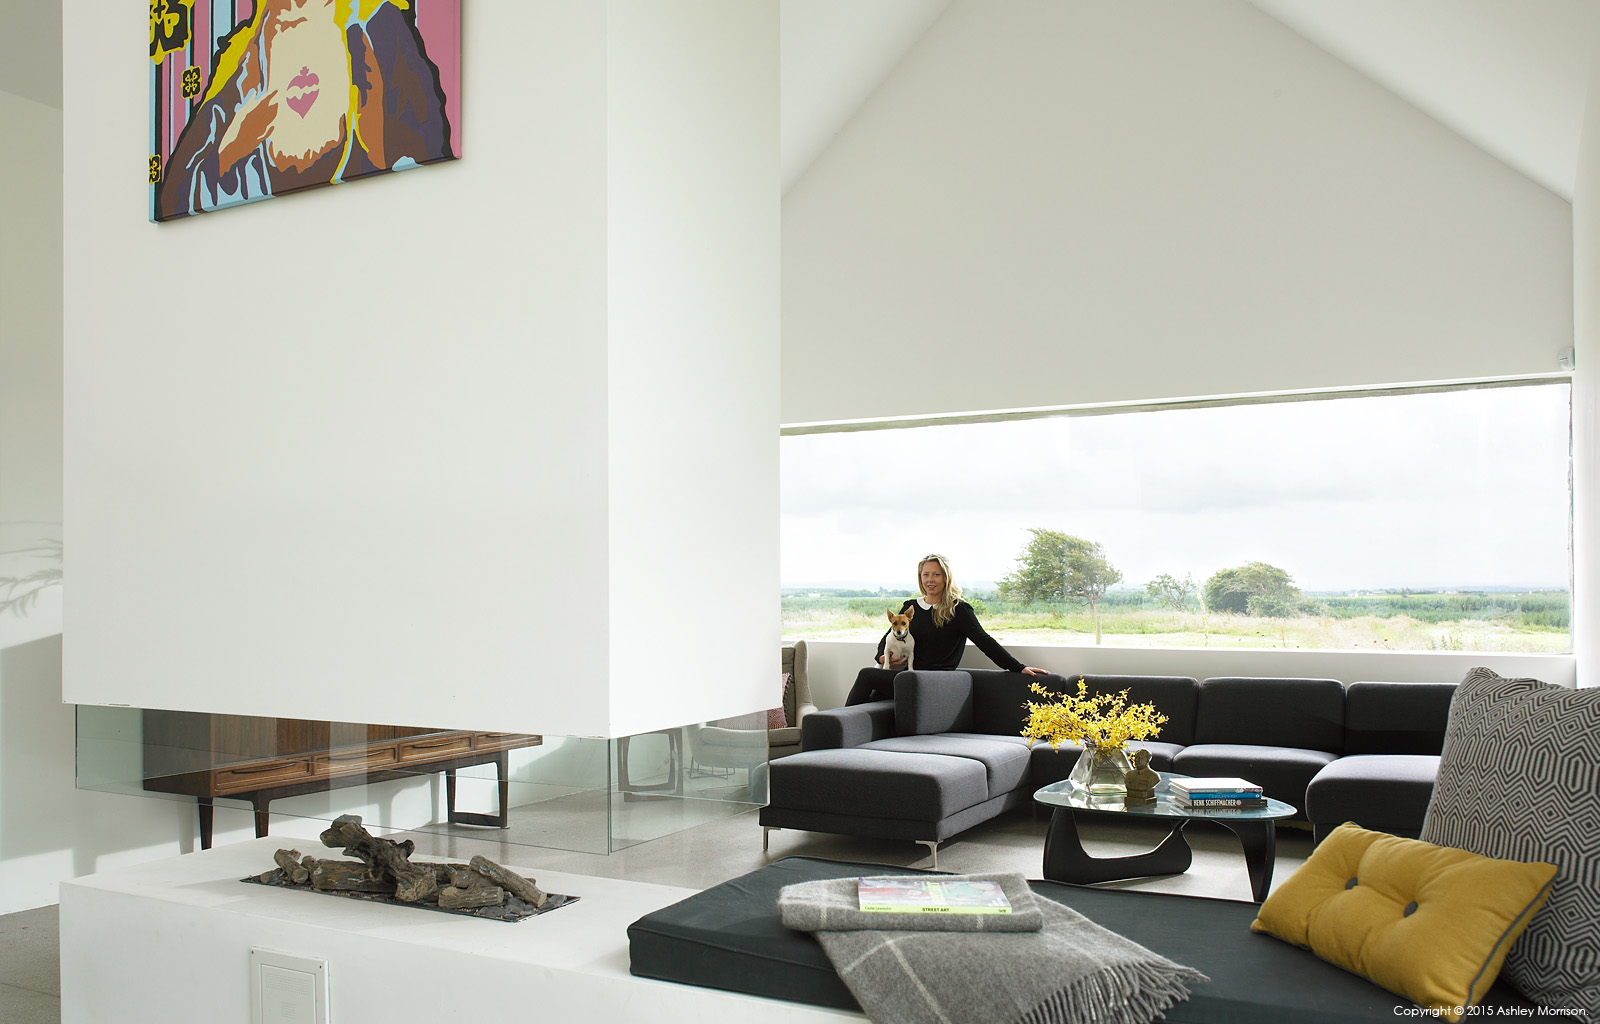 Louise McGuane in her renovated farmhouse called 'The Safe House' near the village of Cooraclare in County Clare.